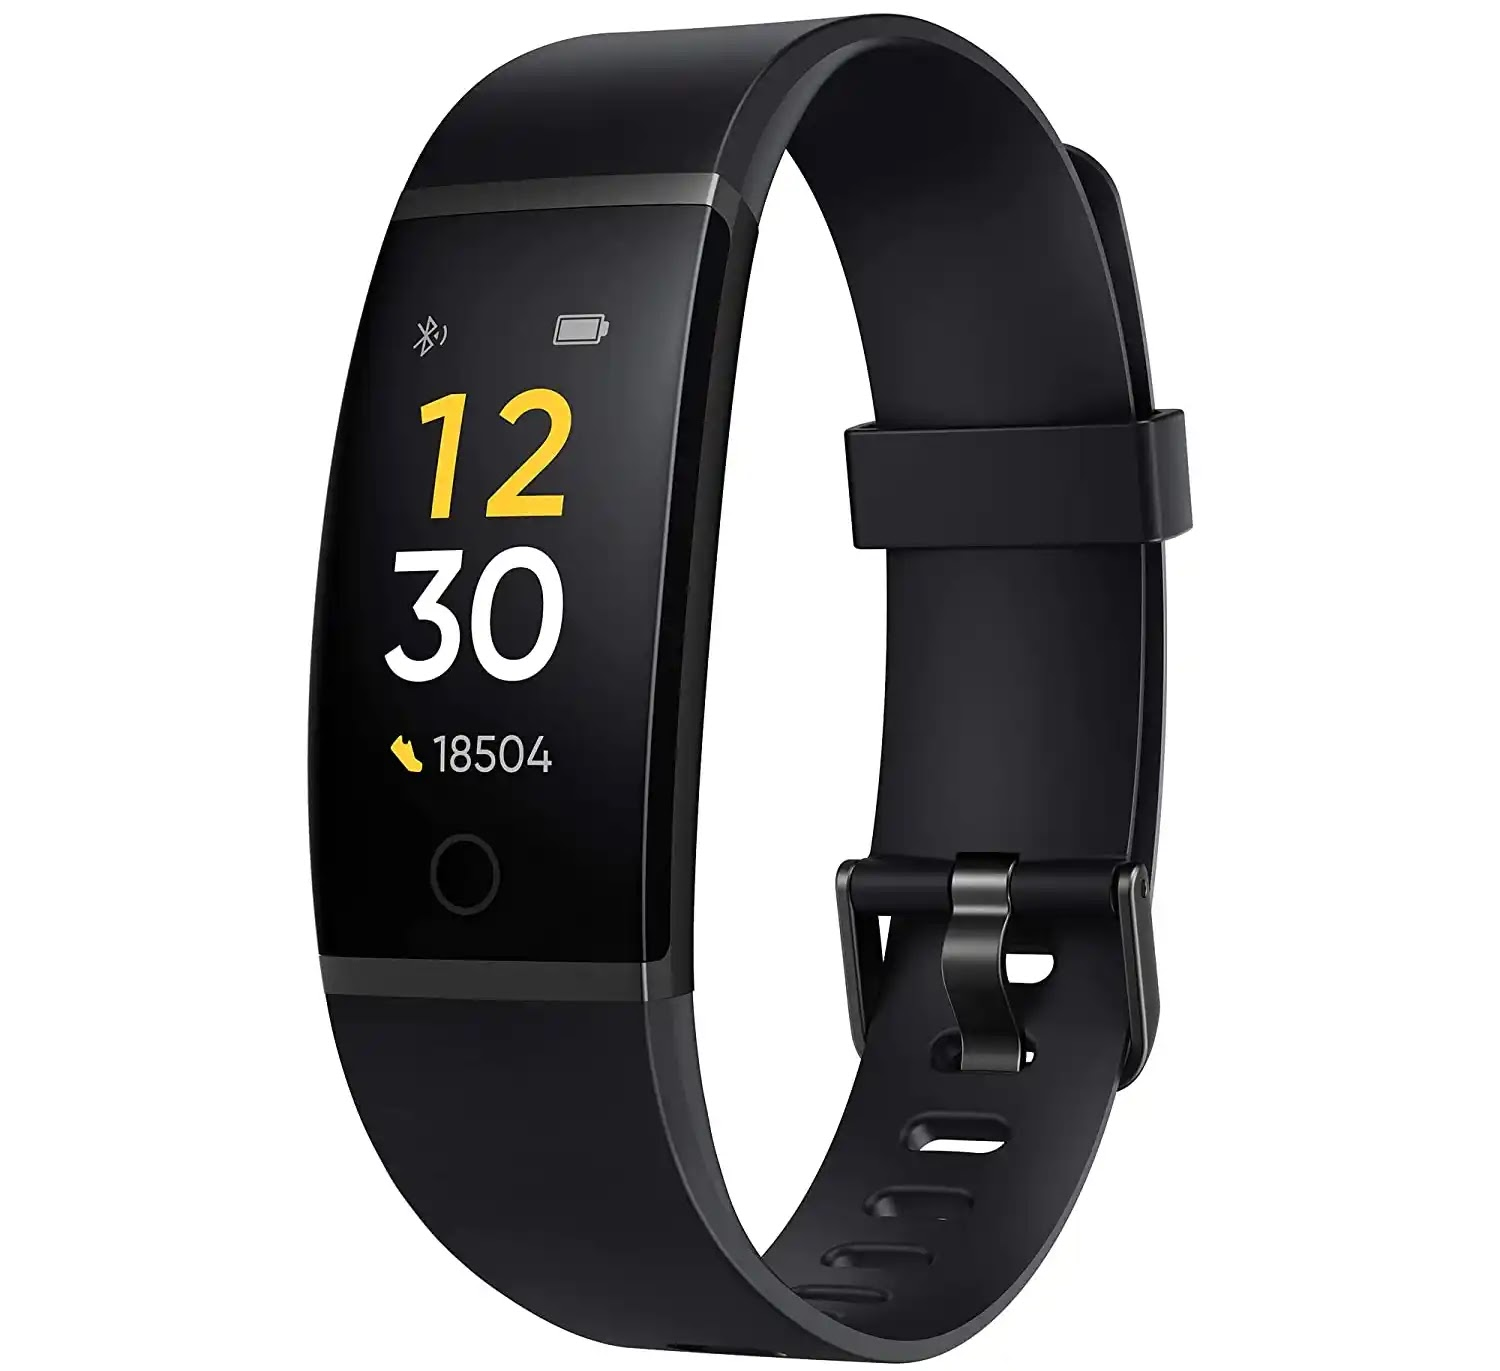 Amazon.in: Buy Realme Band (Black) - Full Colour Screen with Touchkey, Real-time Heart Rate Monitor, in-Built USB Charging, IP68 Water Resistant Online at Low Prices in India | realme Reviews & Ratings